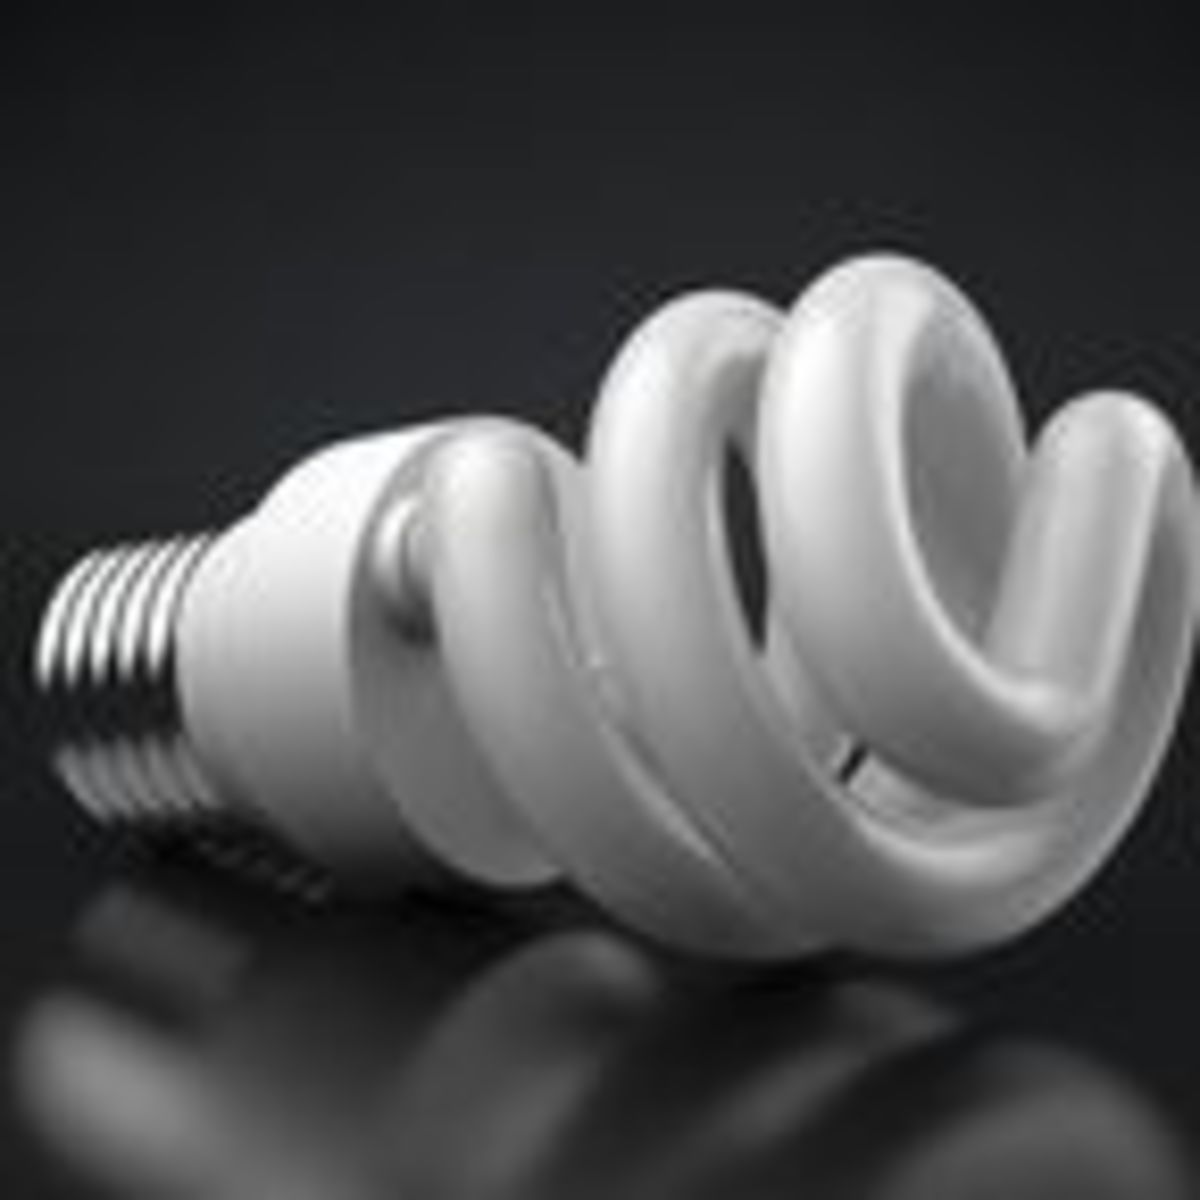 Led Lights Bad Health Why Cfl S Aren T Such A Bright Idea Psychology Today